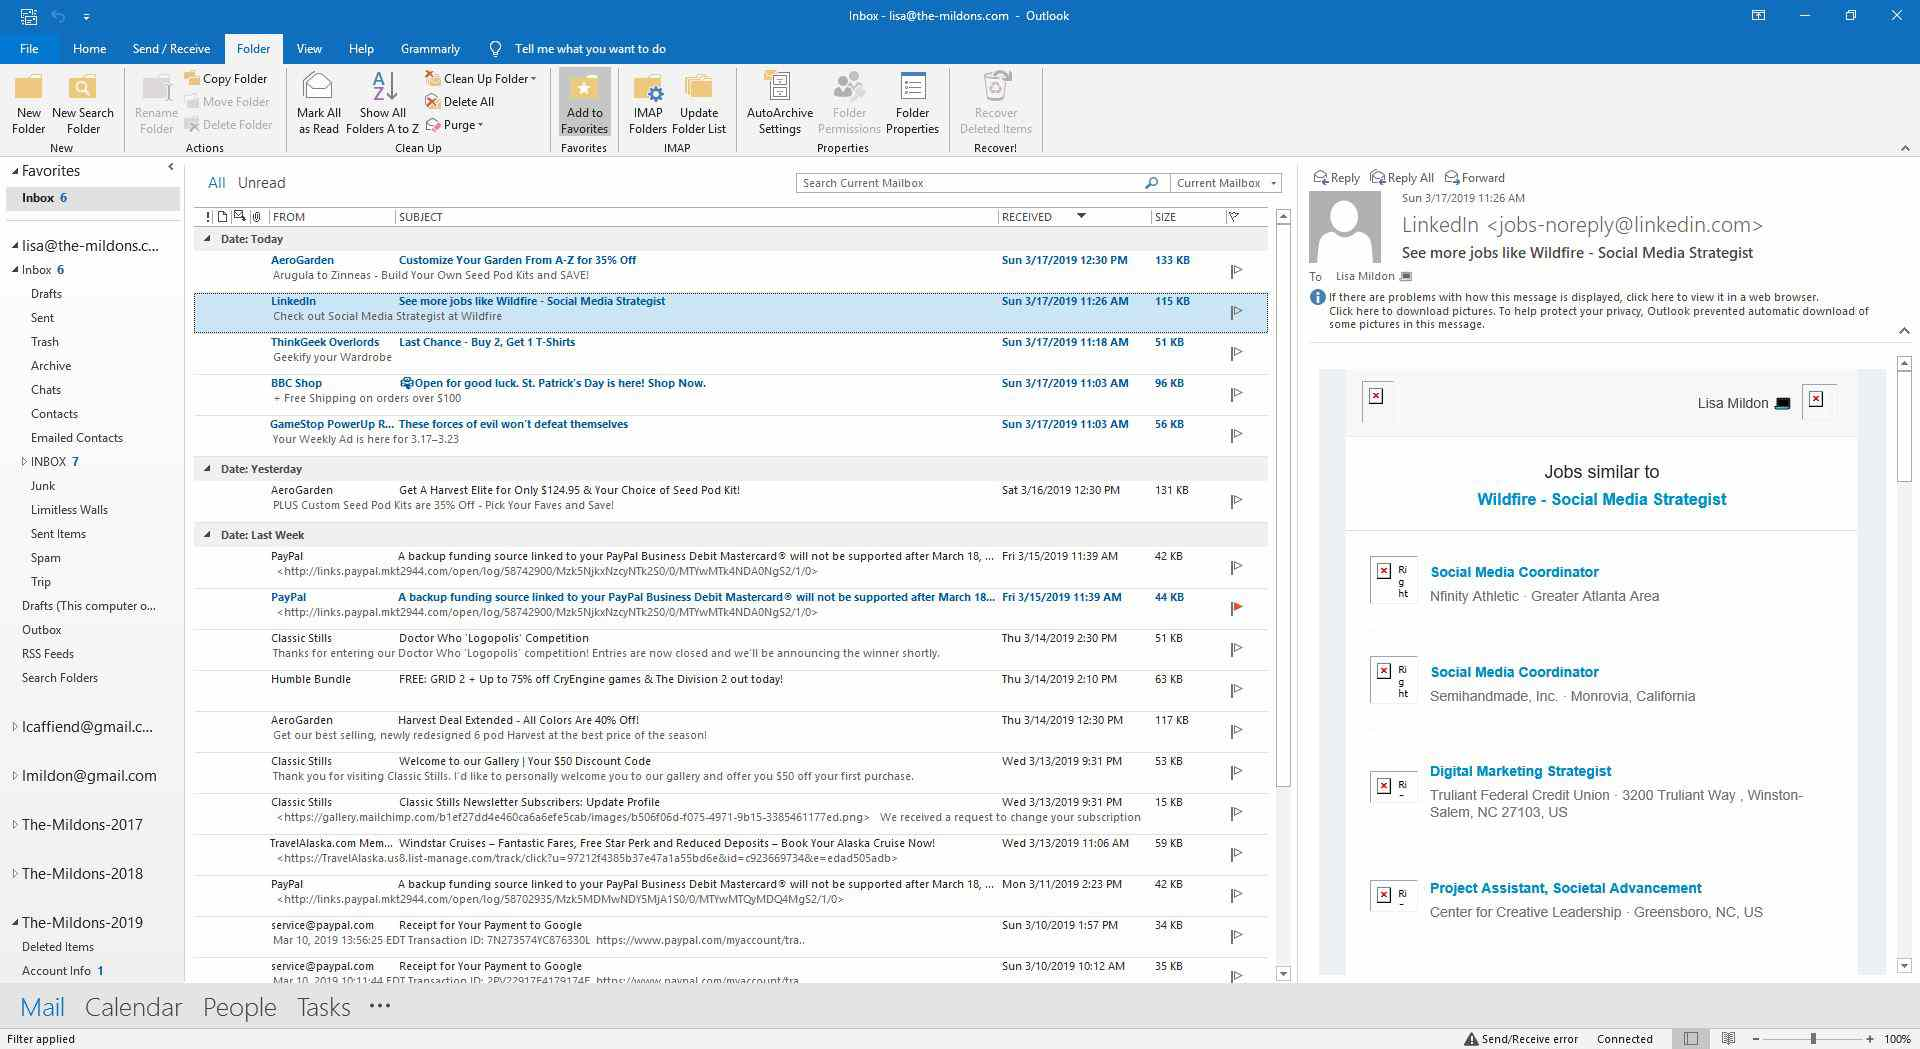 How to Purge Deleted Outlook Email